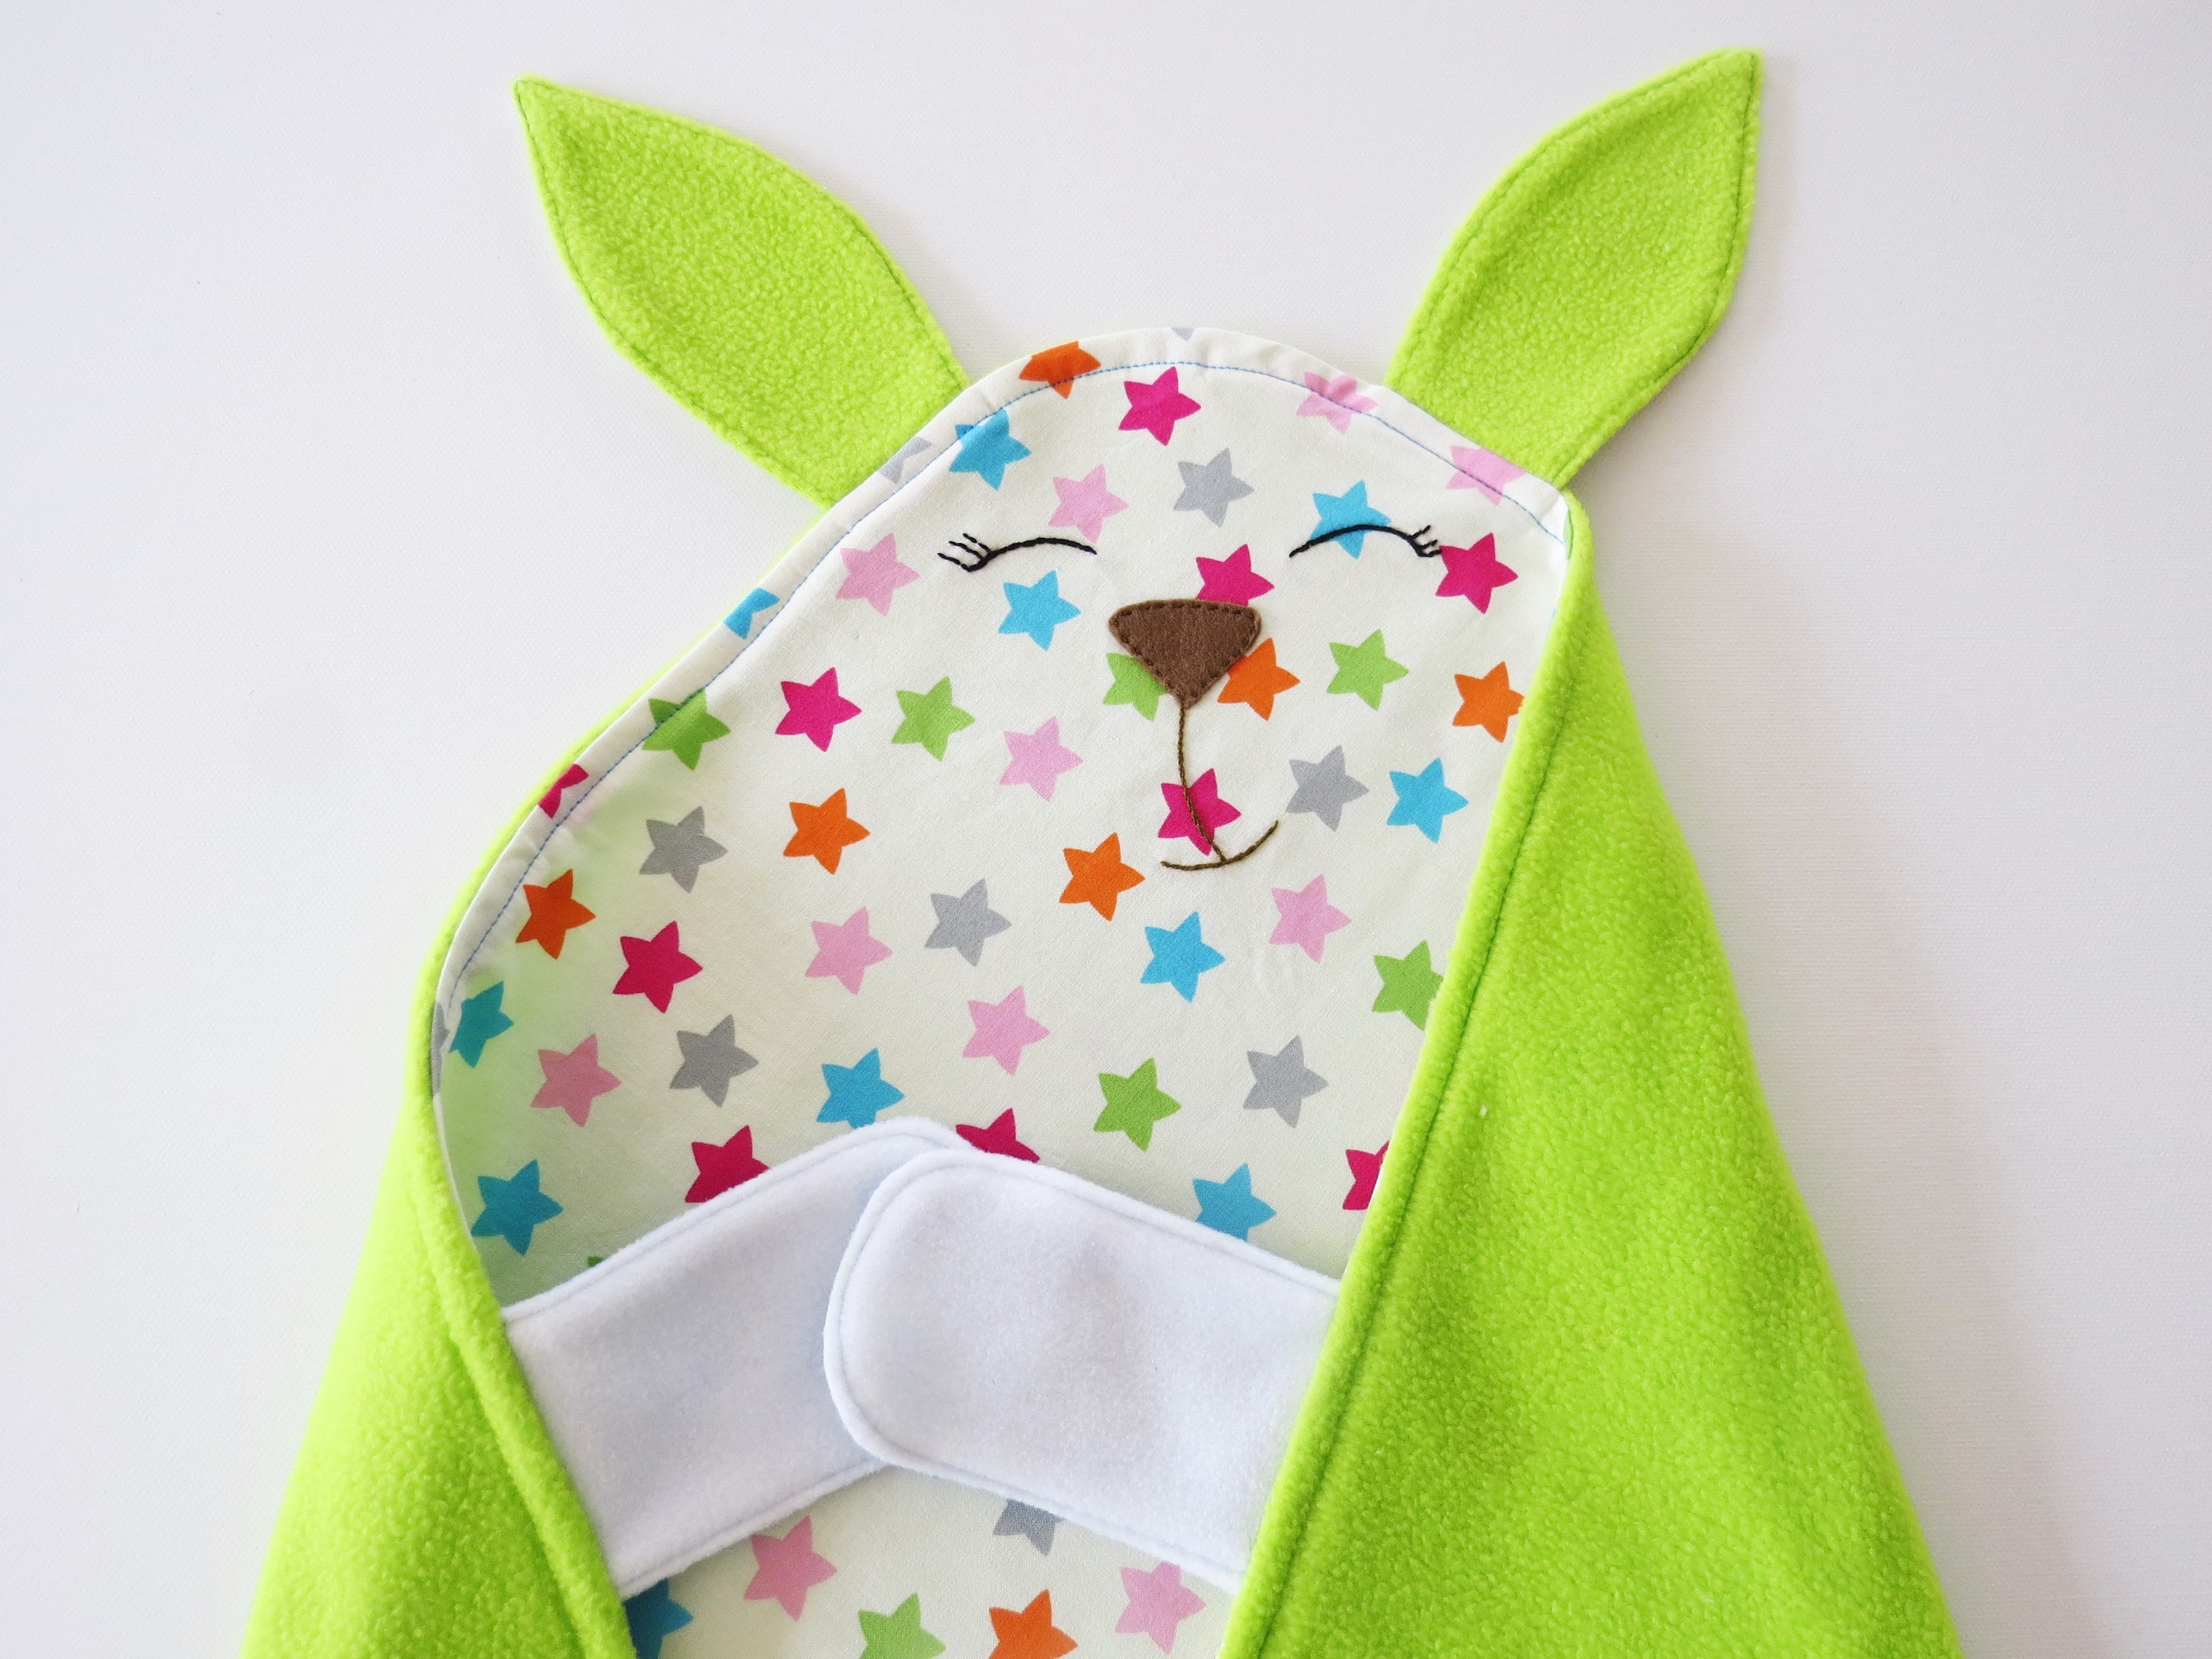 How To Make A Baby Blanket Cute And Colorful Baby Blanket And Toy All In One Sew Toy